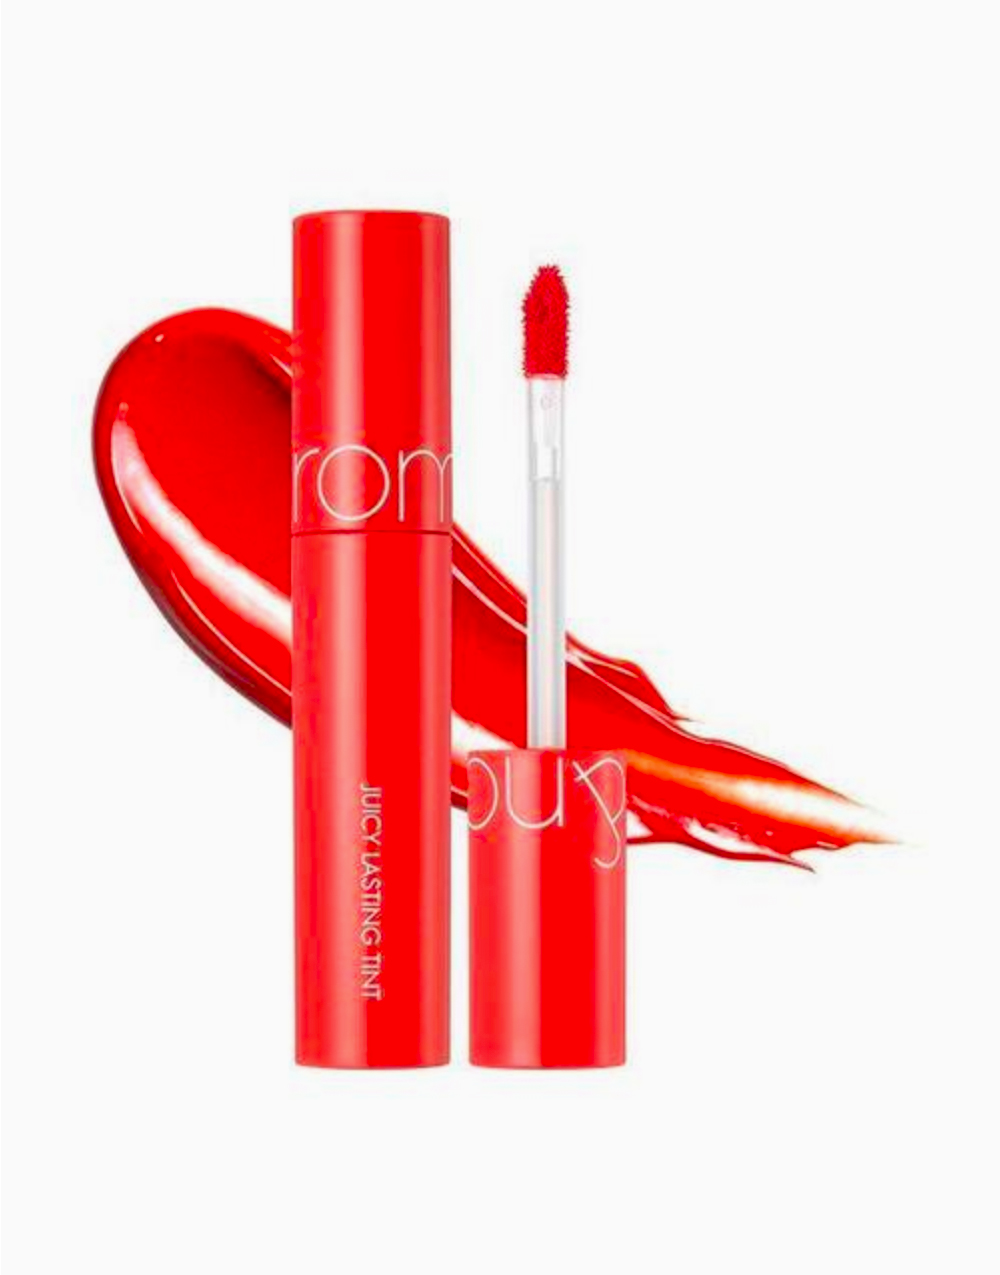 Juicy Lip Tint (New Packaging) by Rom&nd | Ruby red